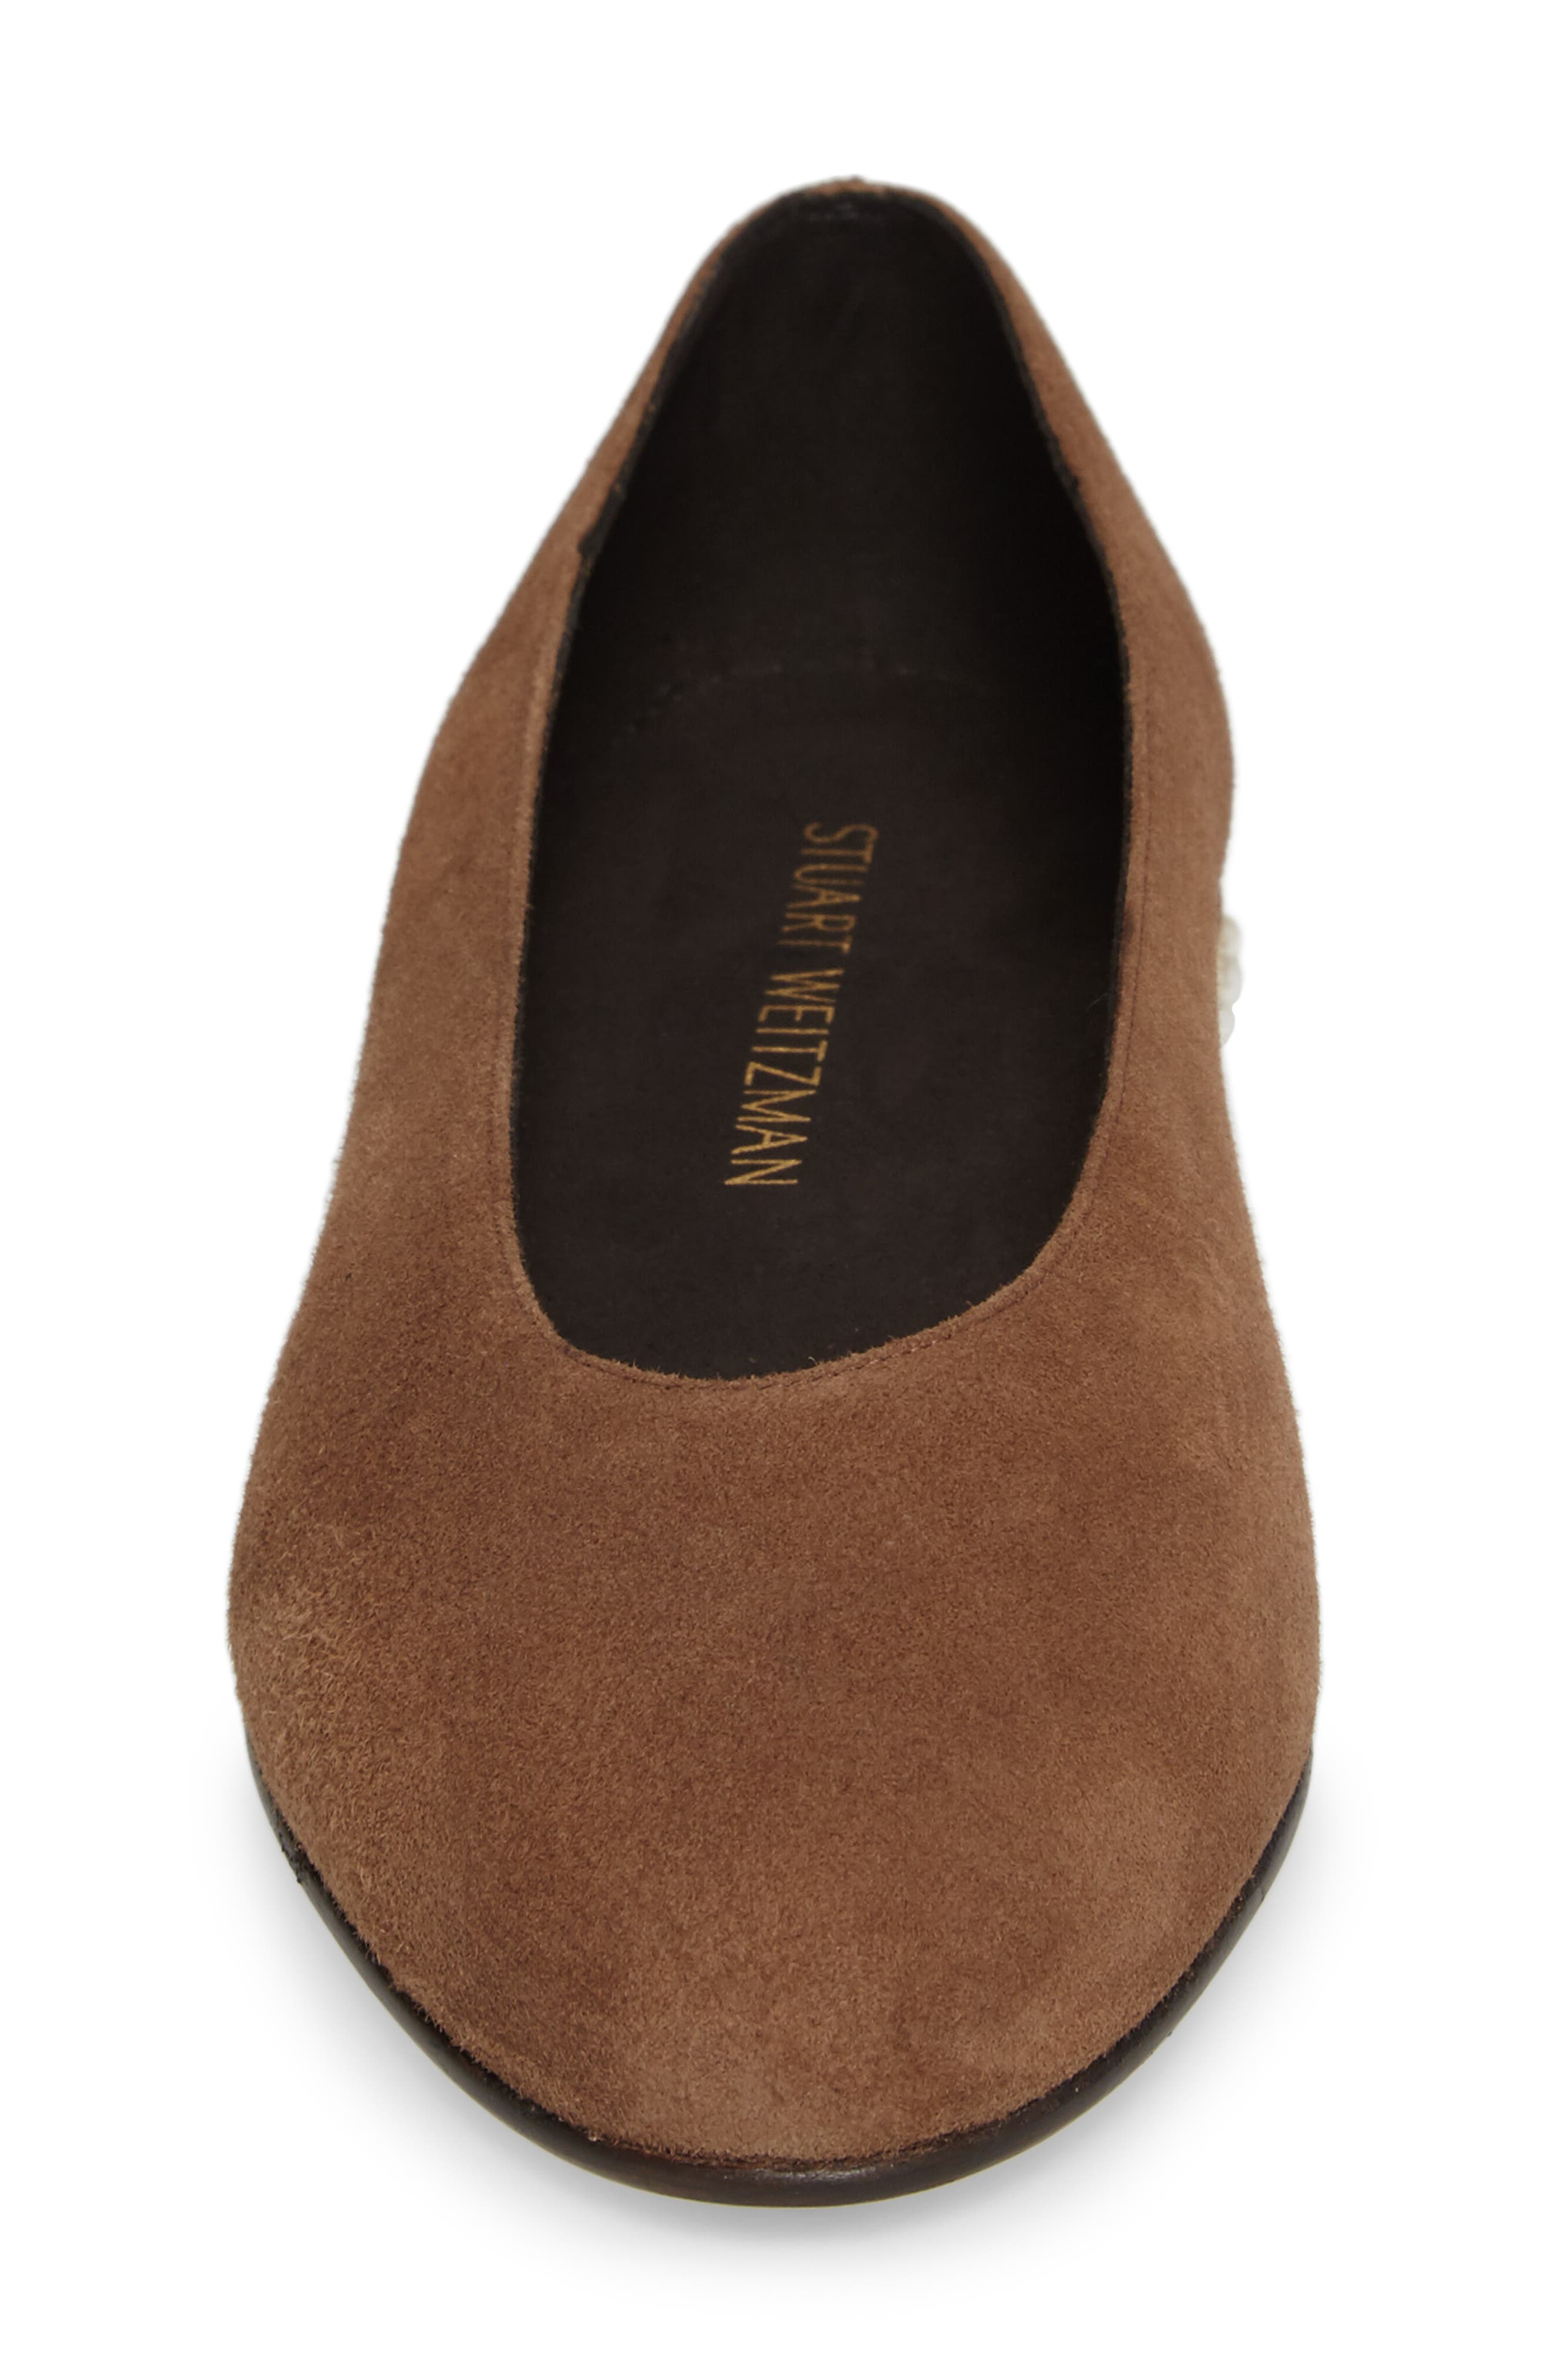 Chicpearl Ballet Flat,                             Alternate thumbnail 4, color,                             Nutmeg Suede